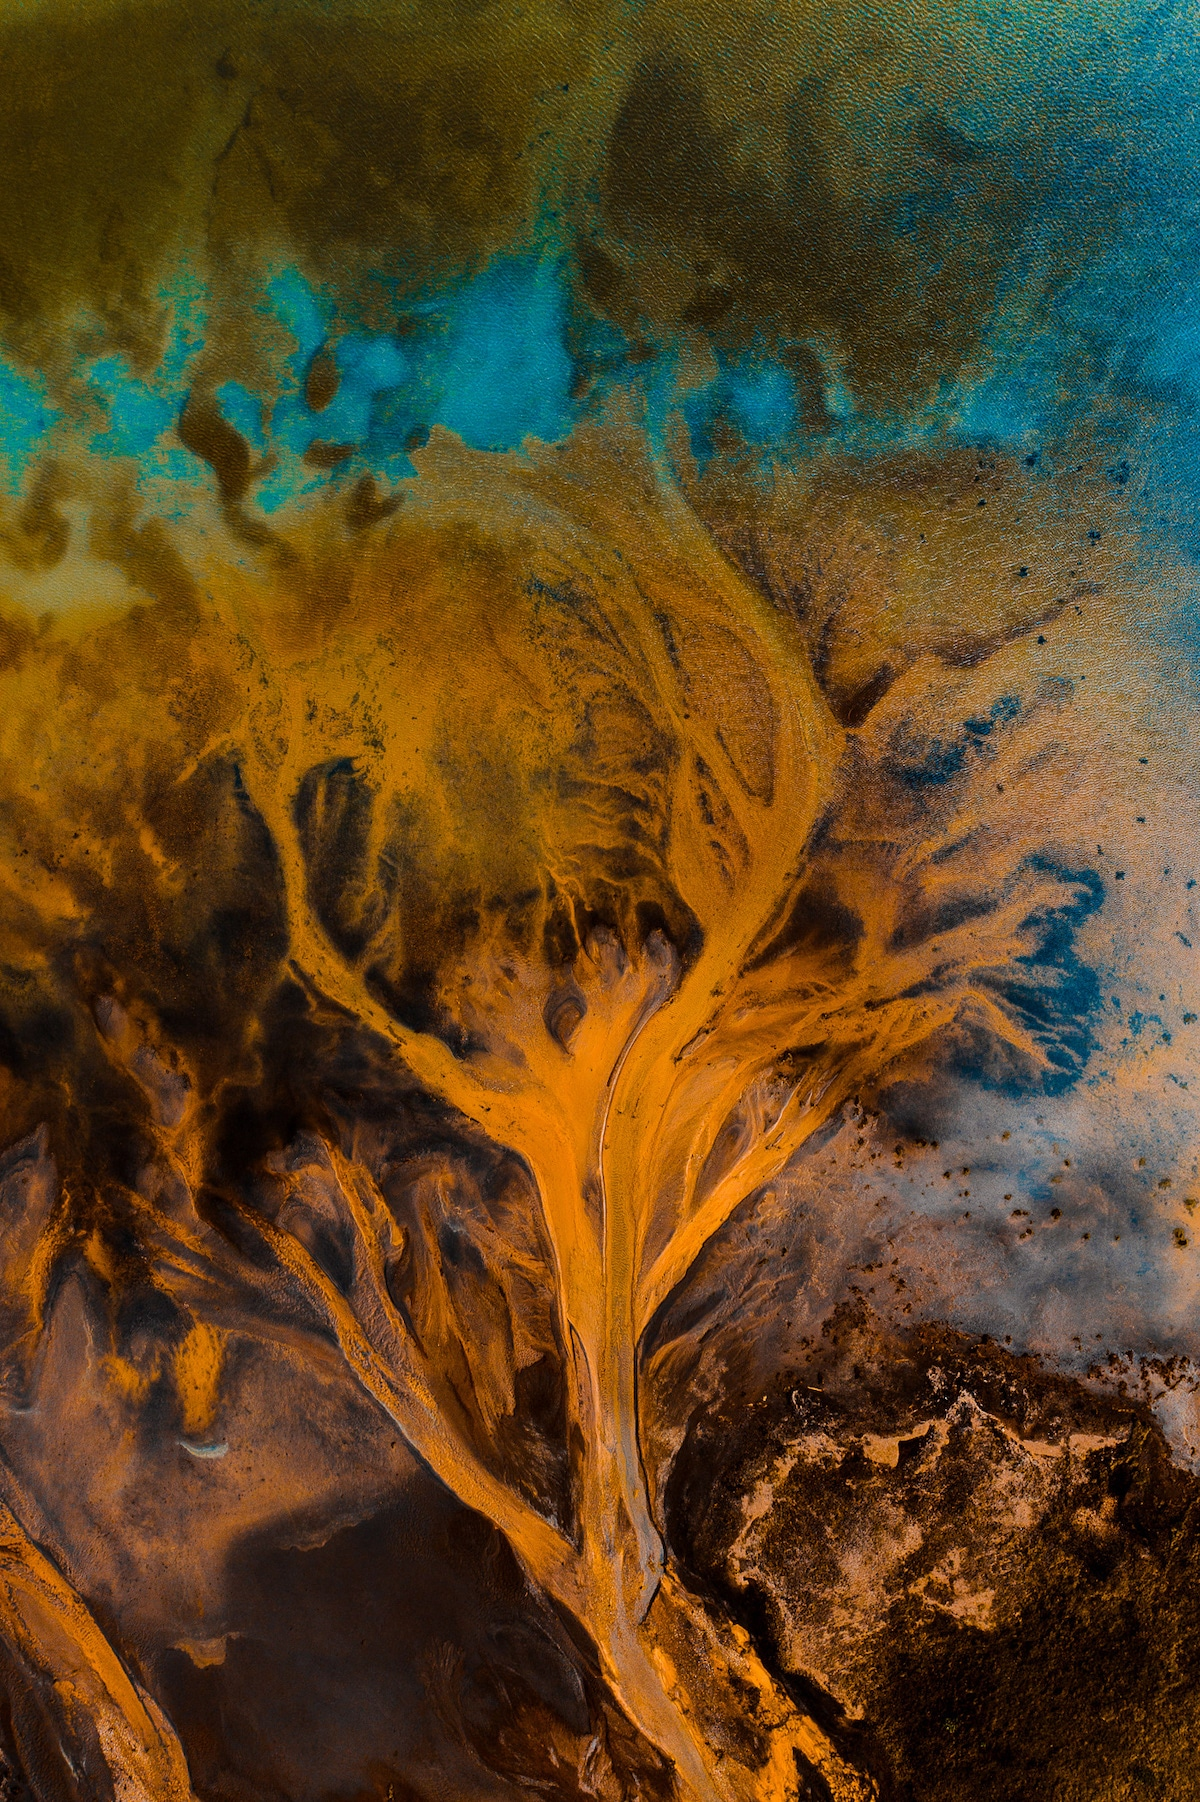 Abstract Photo of Iceland's Rivers